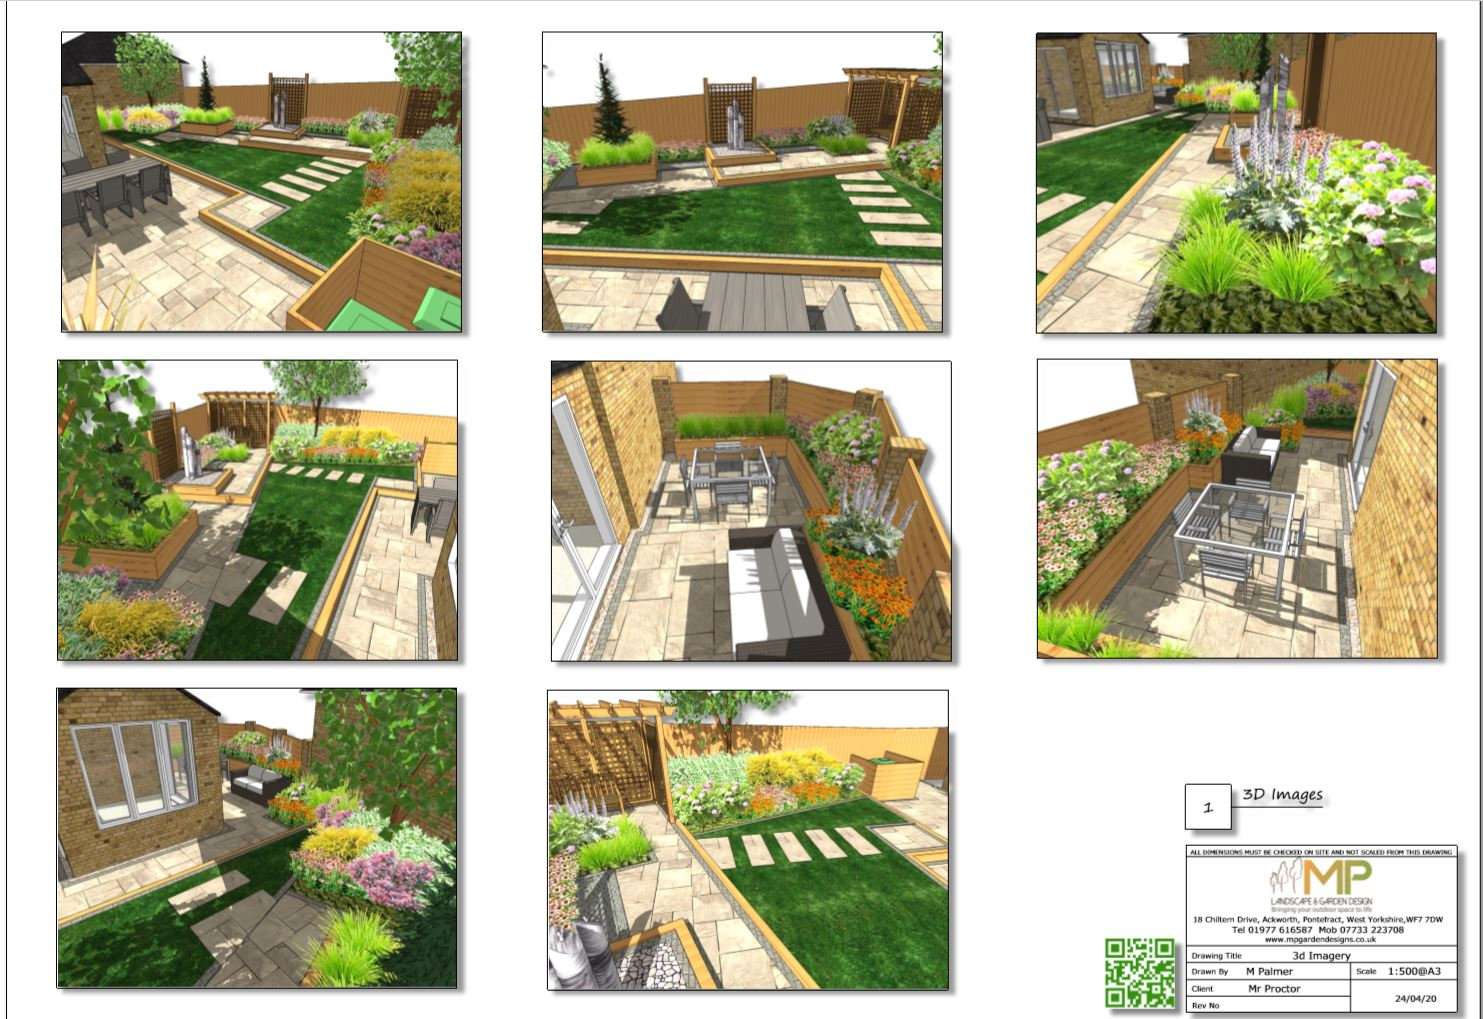 4, Colour 3D images for a rear garden South Kirkby